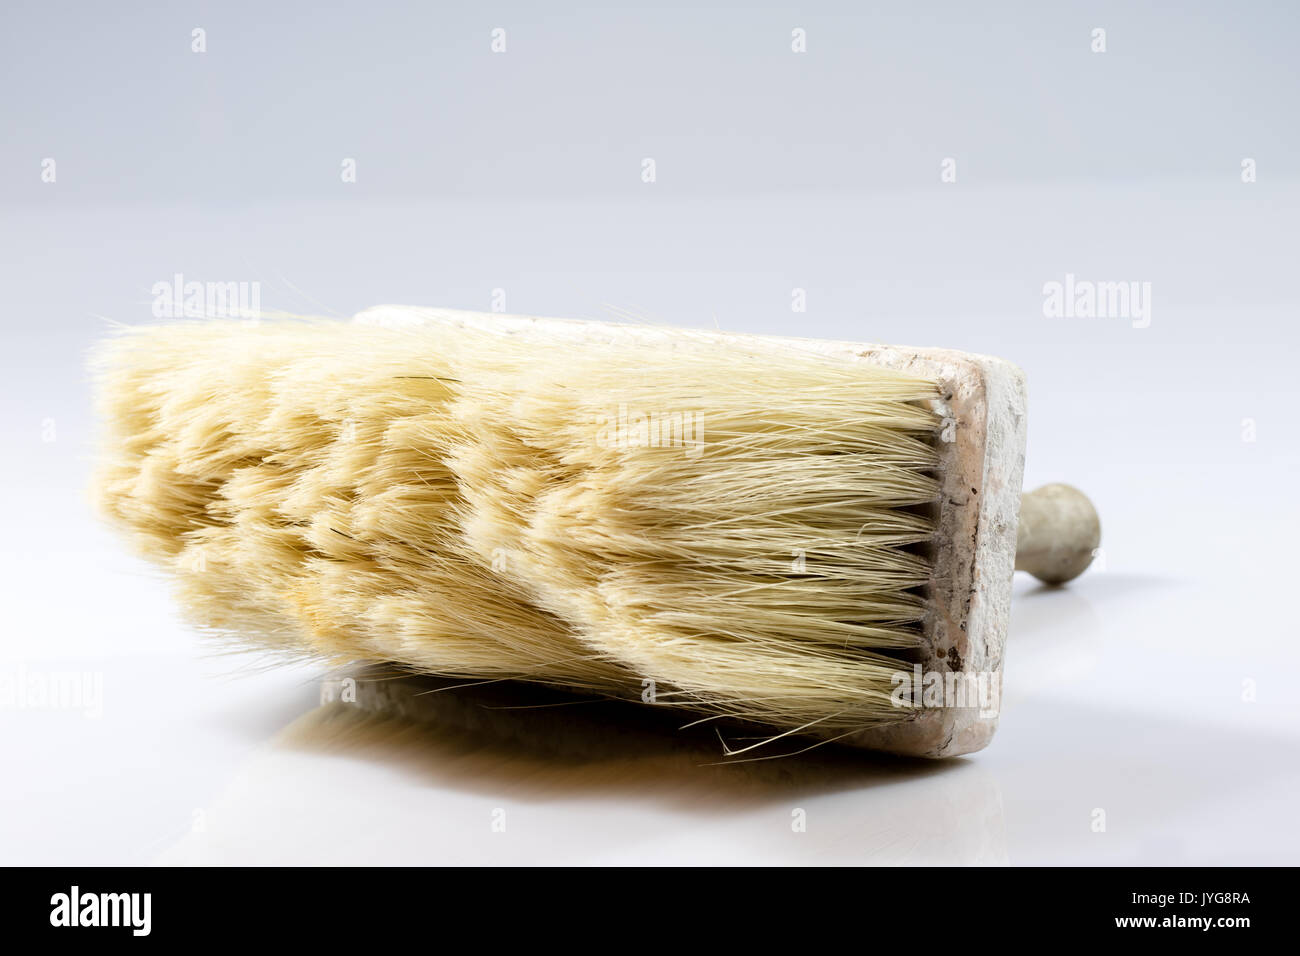 Painting Walls White Stock Photos & Painting Walls White Stock ...